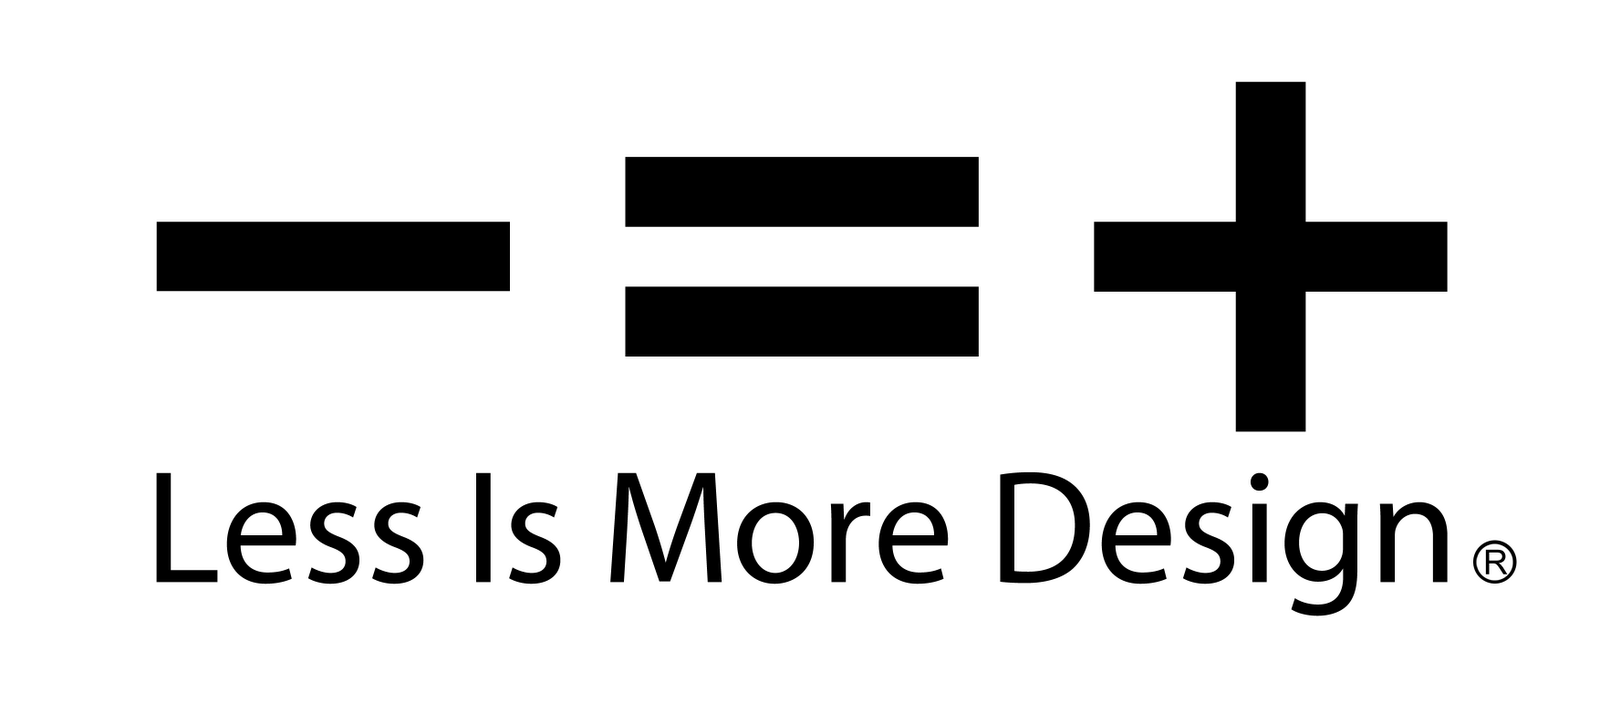 Poster design less is more -  Less Is More As Designers We All Know That A Minimalist Design Mcan Achieve Beautiful